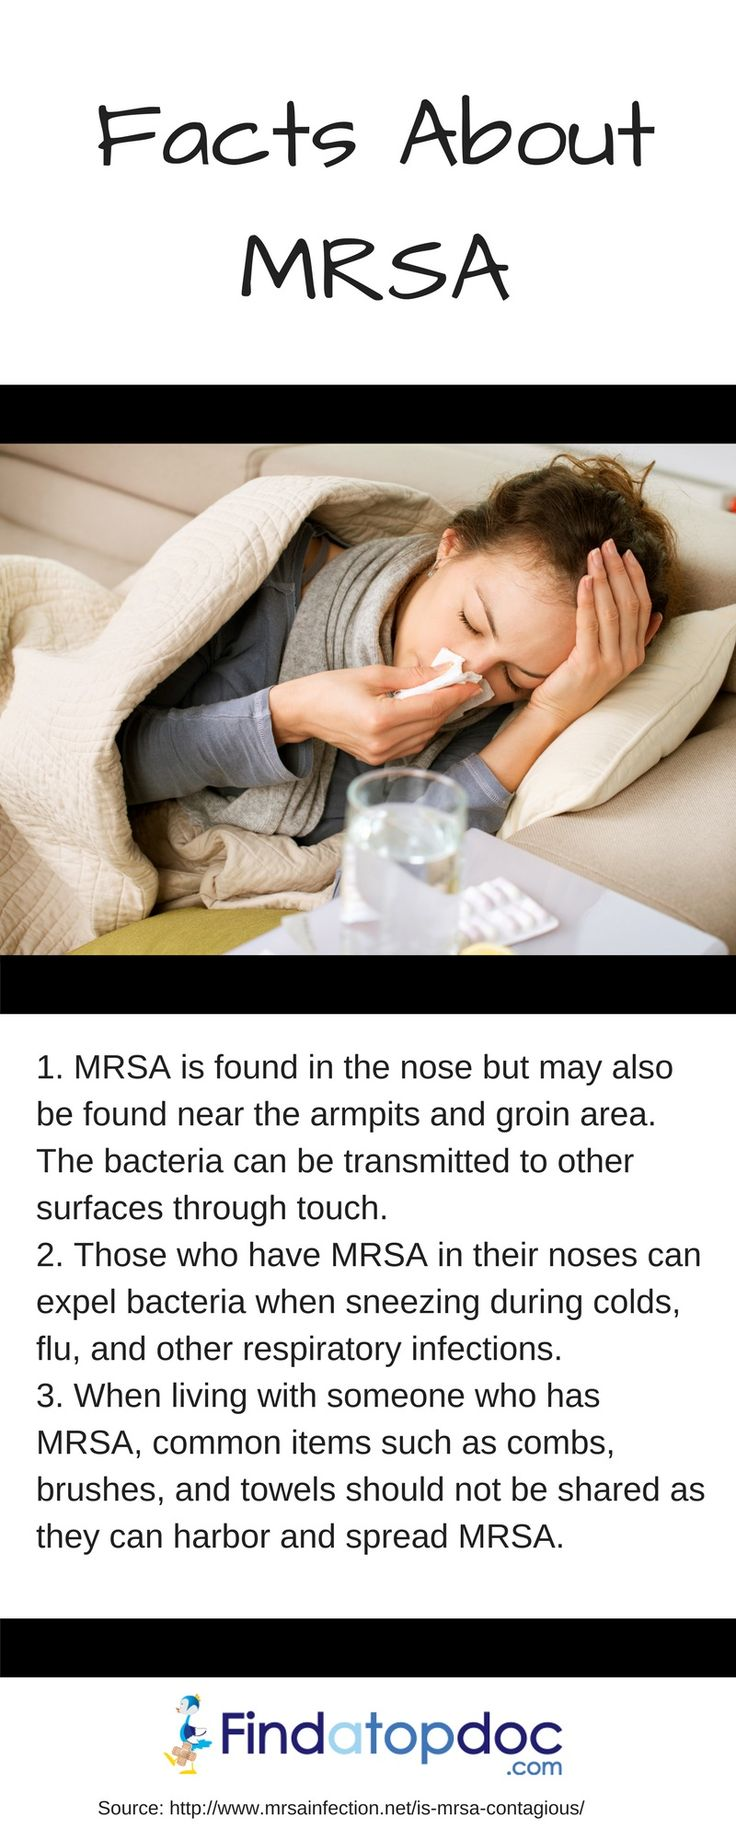 Methicillin-resistant Staphylococcus aureus (MRSA) is a bacterium that causes infections in different parts of the body. However, it's much more complex to treat than most strains of staphylococcus aureus -- or staph -- because it's resistant to many antibiotics.